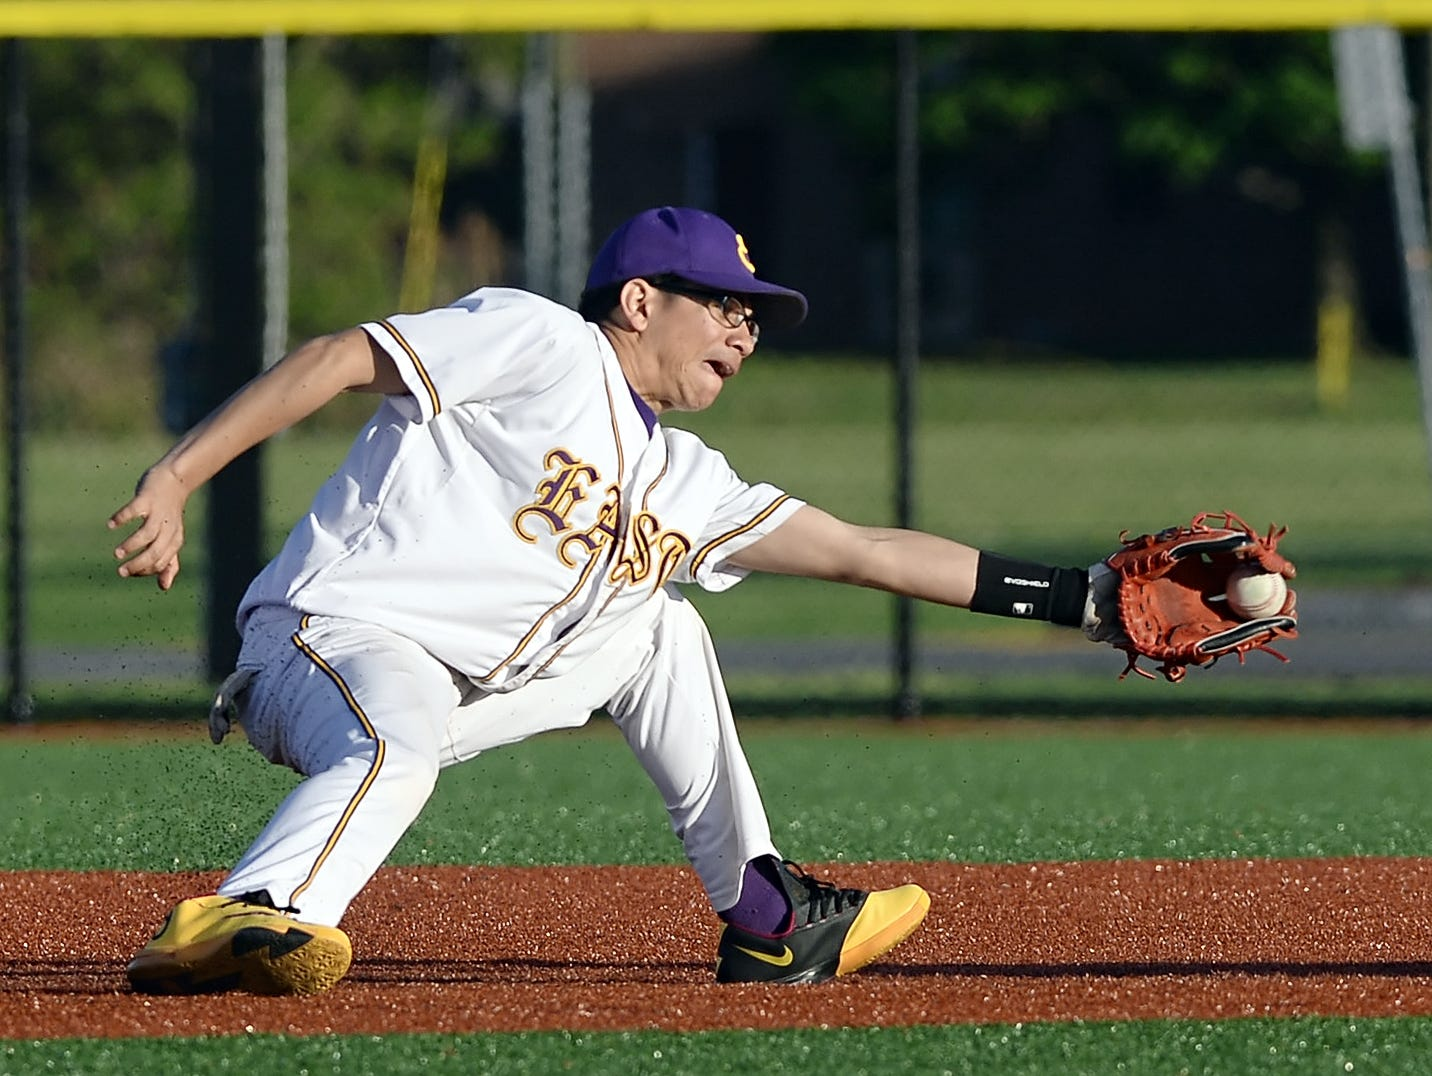 East High's Jose Gonzalez, left, reaches for the throw before tagging Monroe's Elis Rosado out at second during RCAC championship game played at Monroe Community College on Thursday, May 14, 2015.